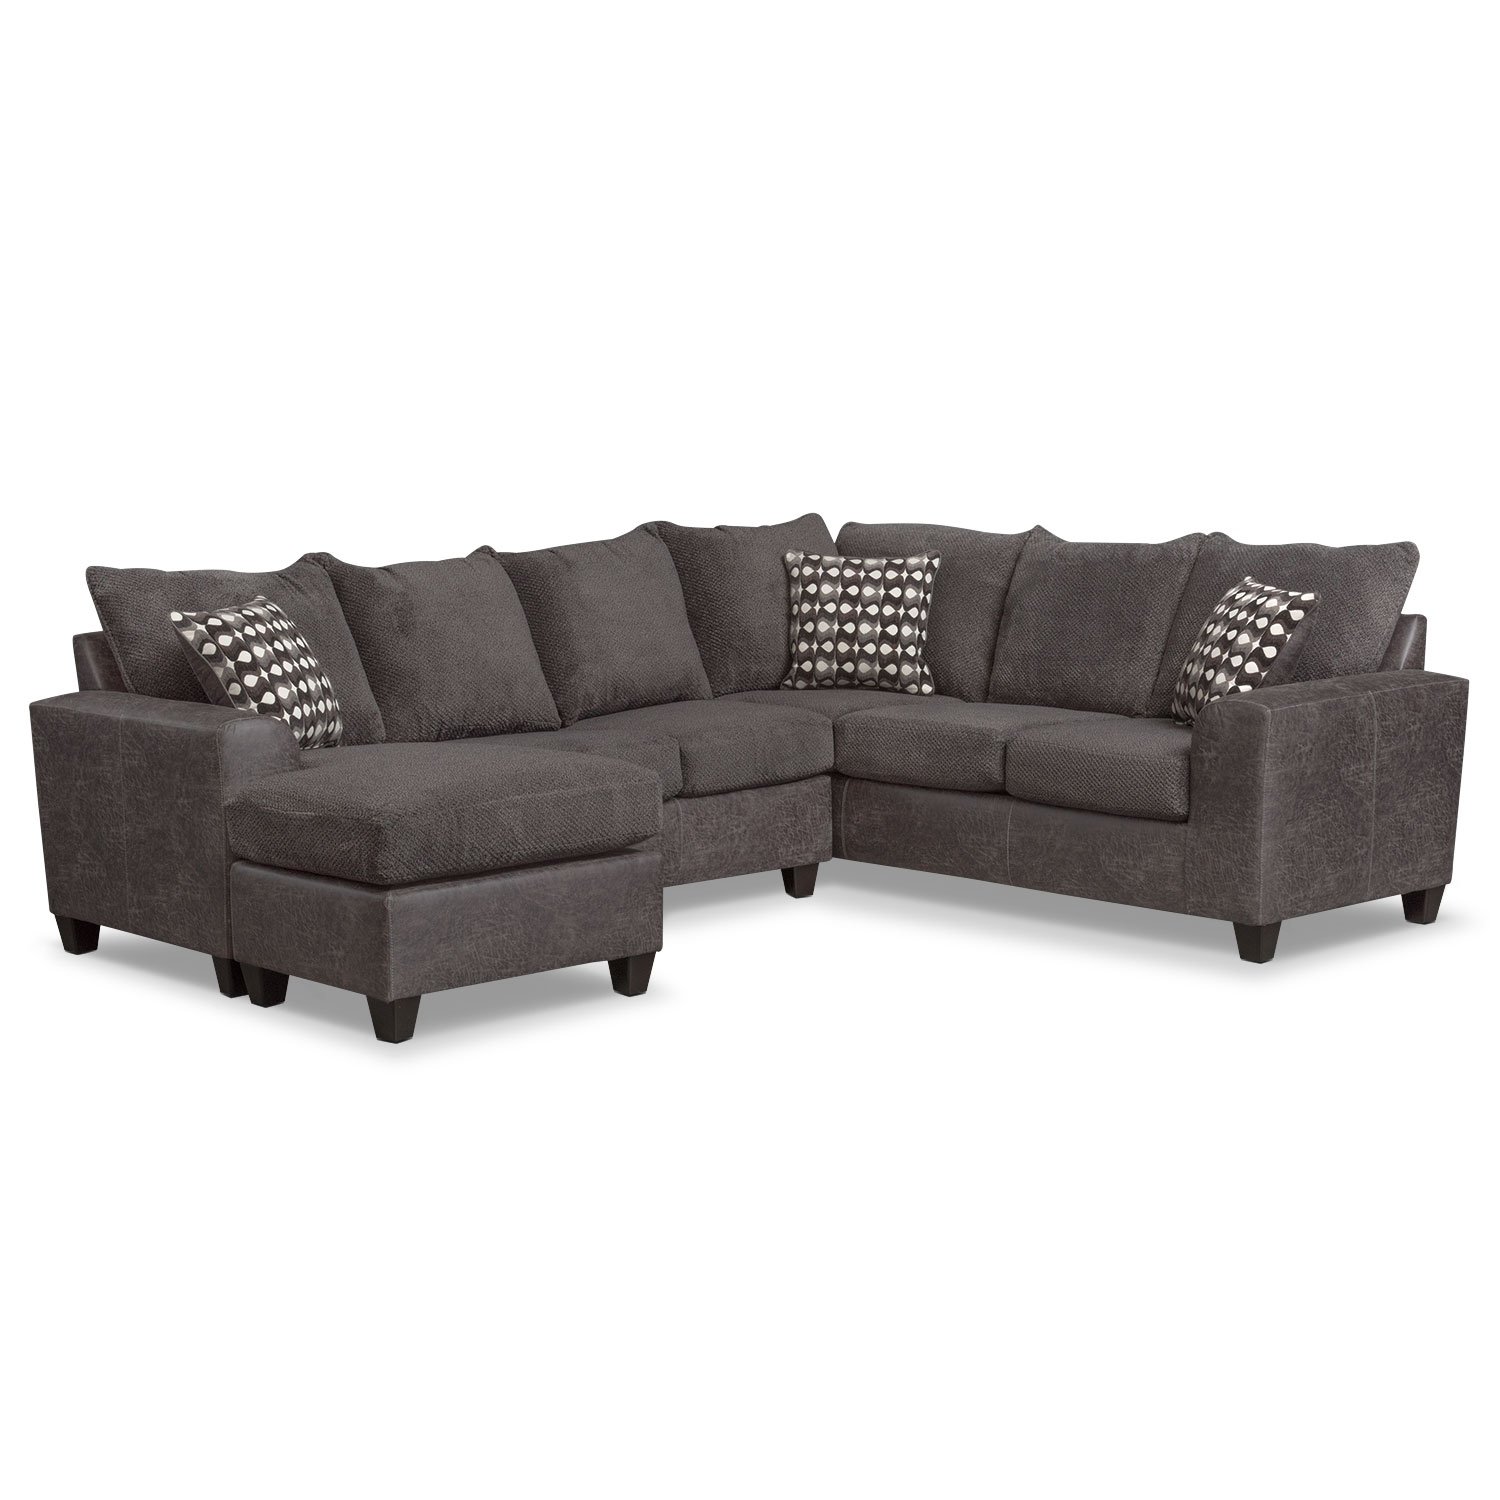 Brando 3 Piece Sectional With Modular Chaise – Smoke | Value City Inside Value City Sectional Sofas (View 7 of 10)